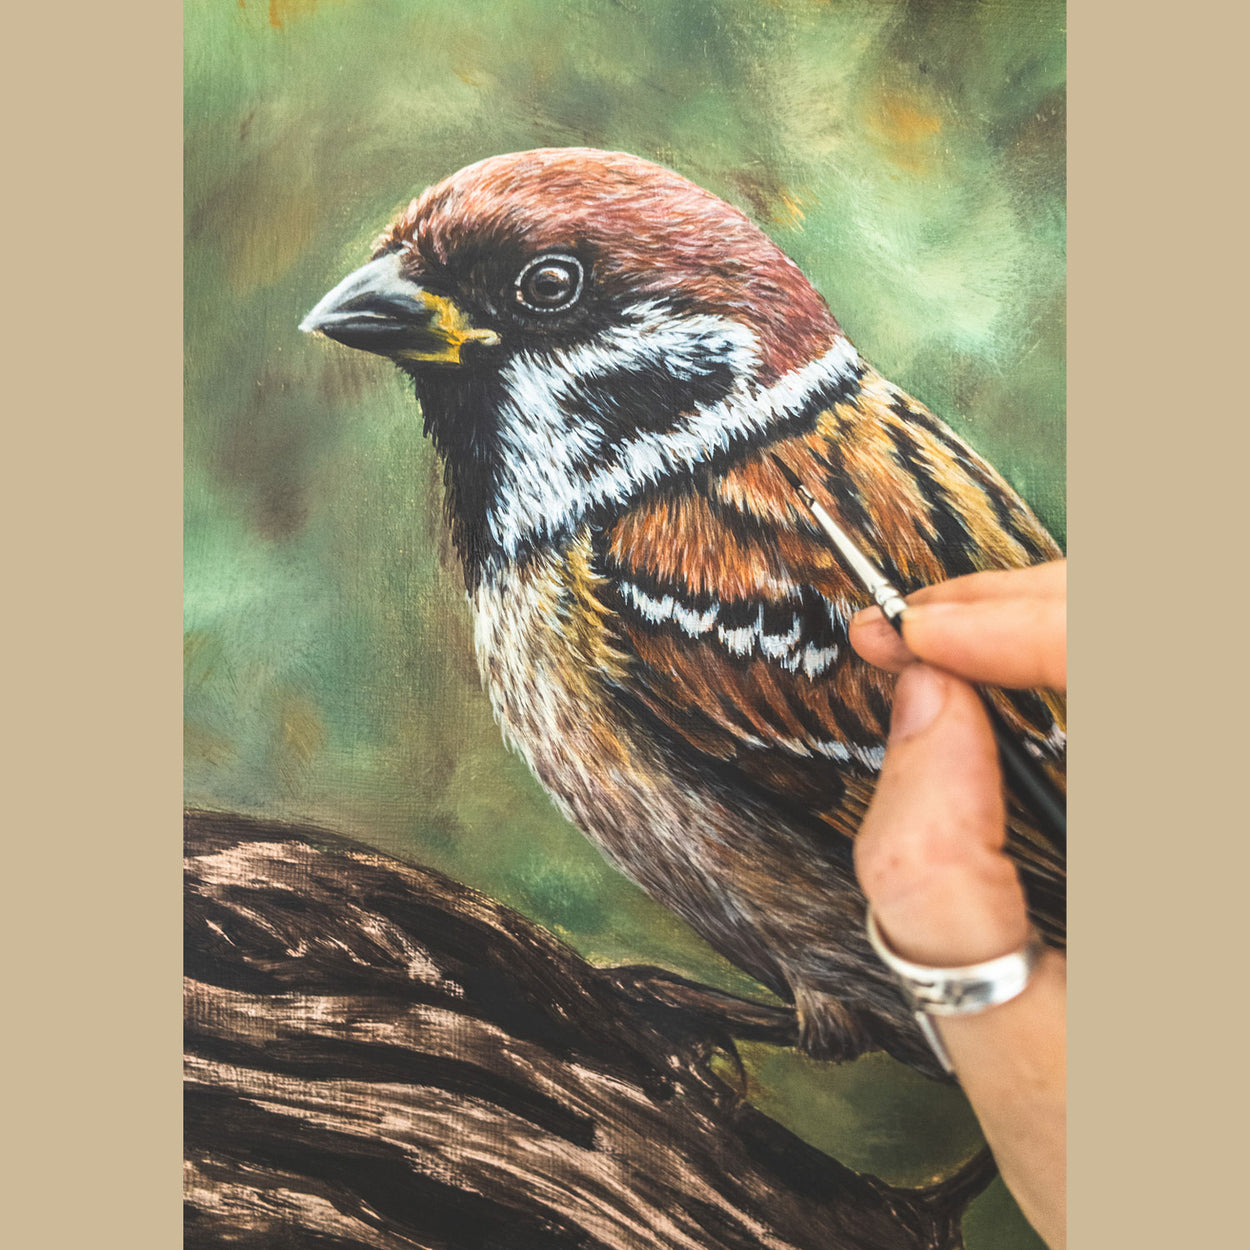 Tree Sparrow Painting in Progress - Jill Dimond - The Thriving Wild